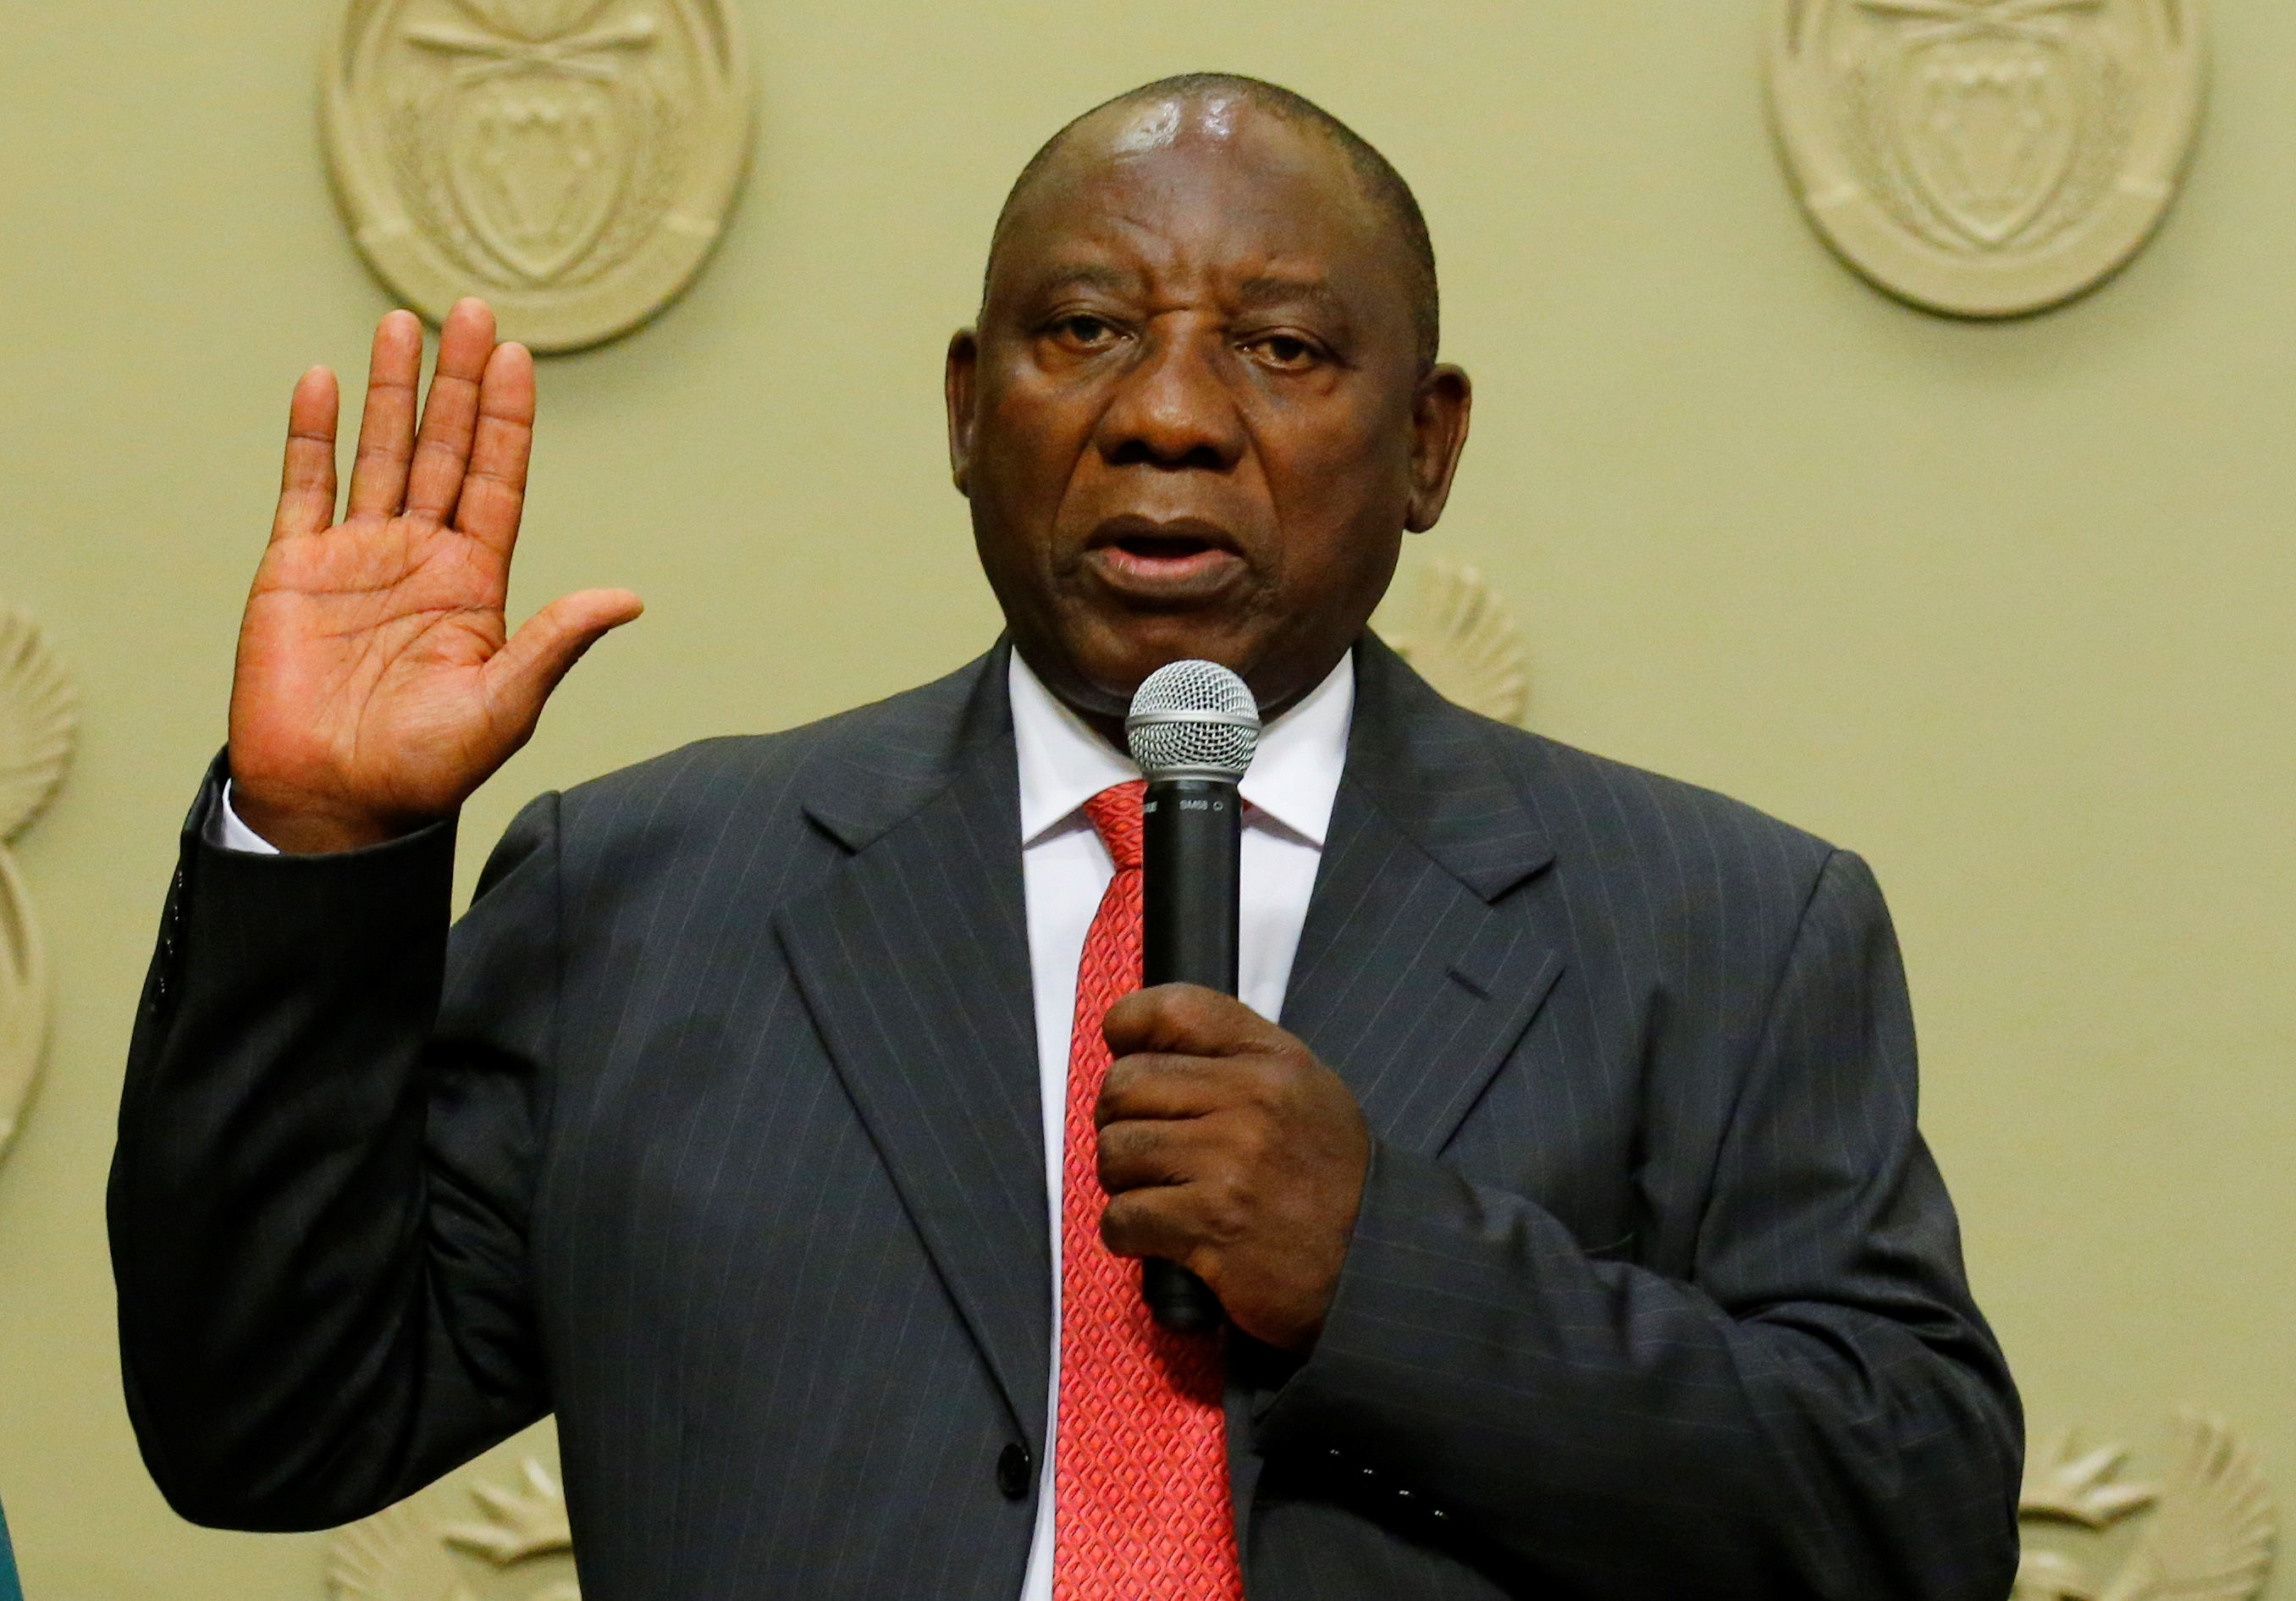 Elected President of South Africa, Ramaphosa Vows to Fight for Corruption